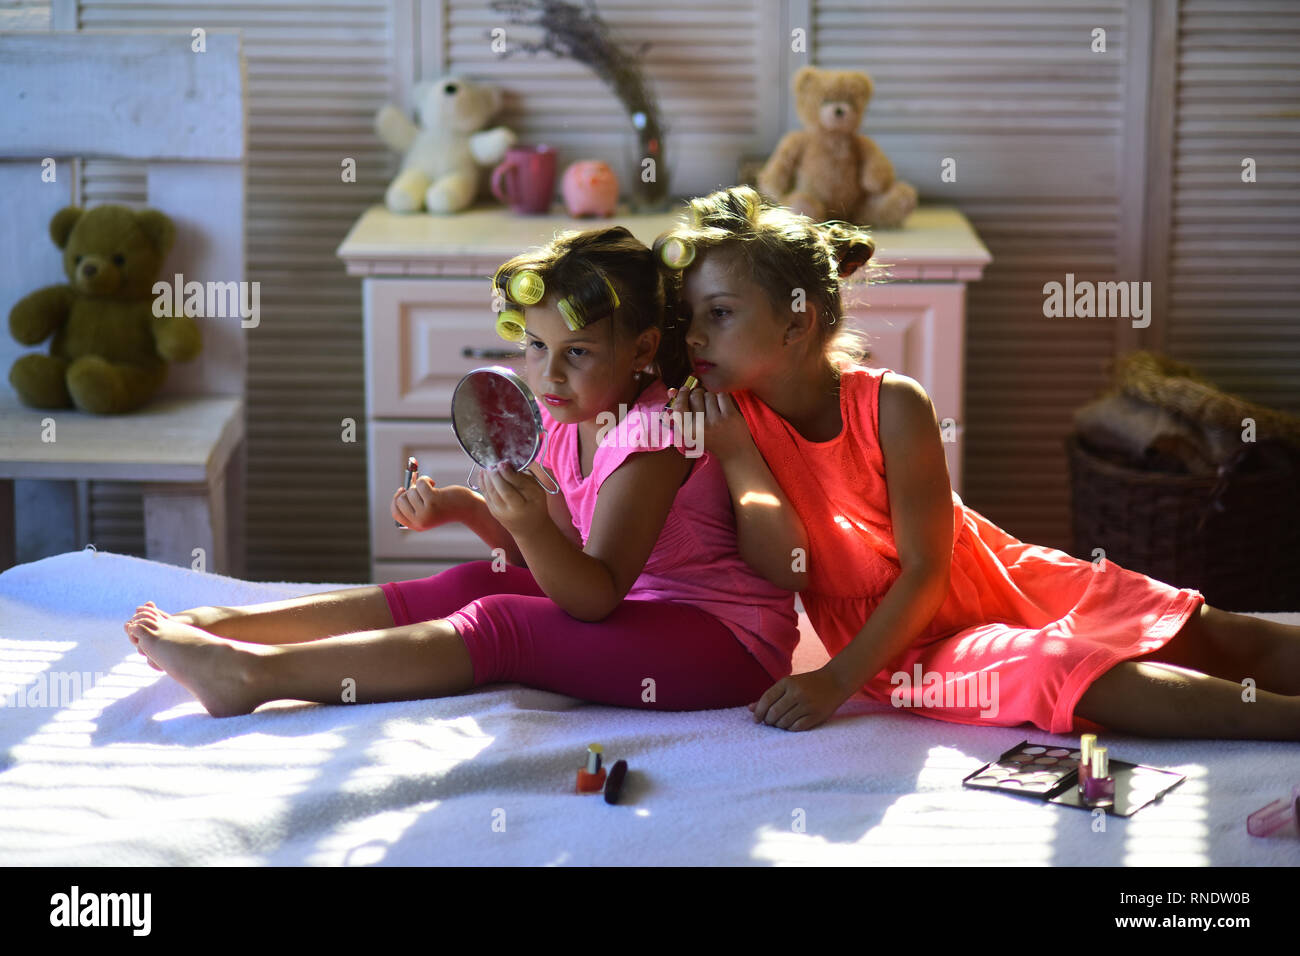 Little girls do makeup sitting in room with toys - Stock Image